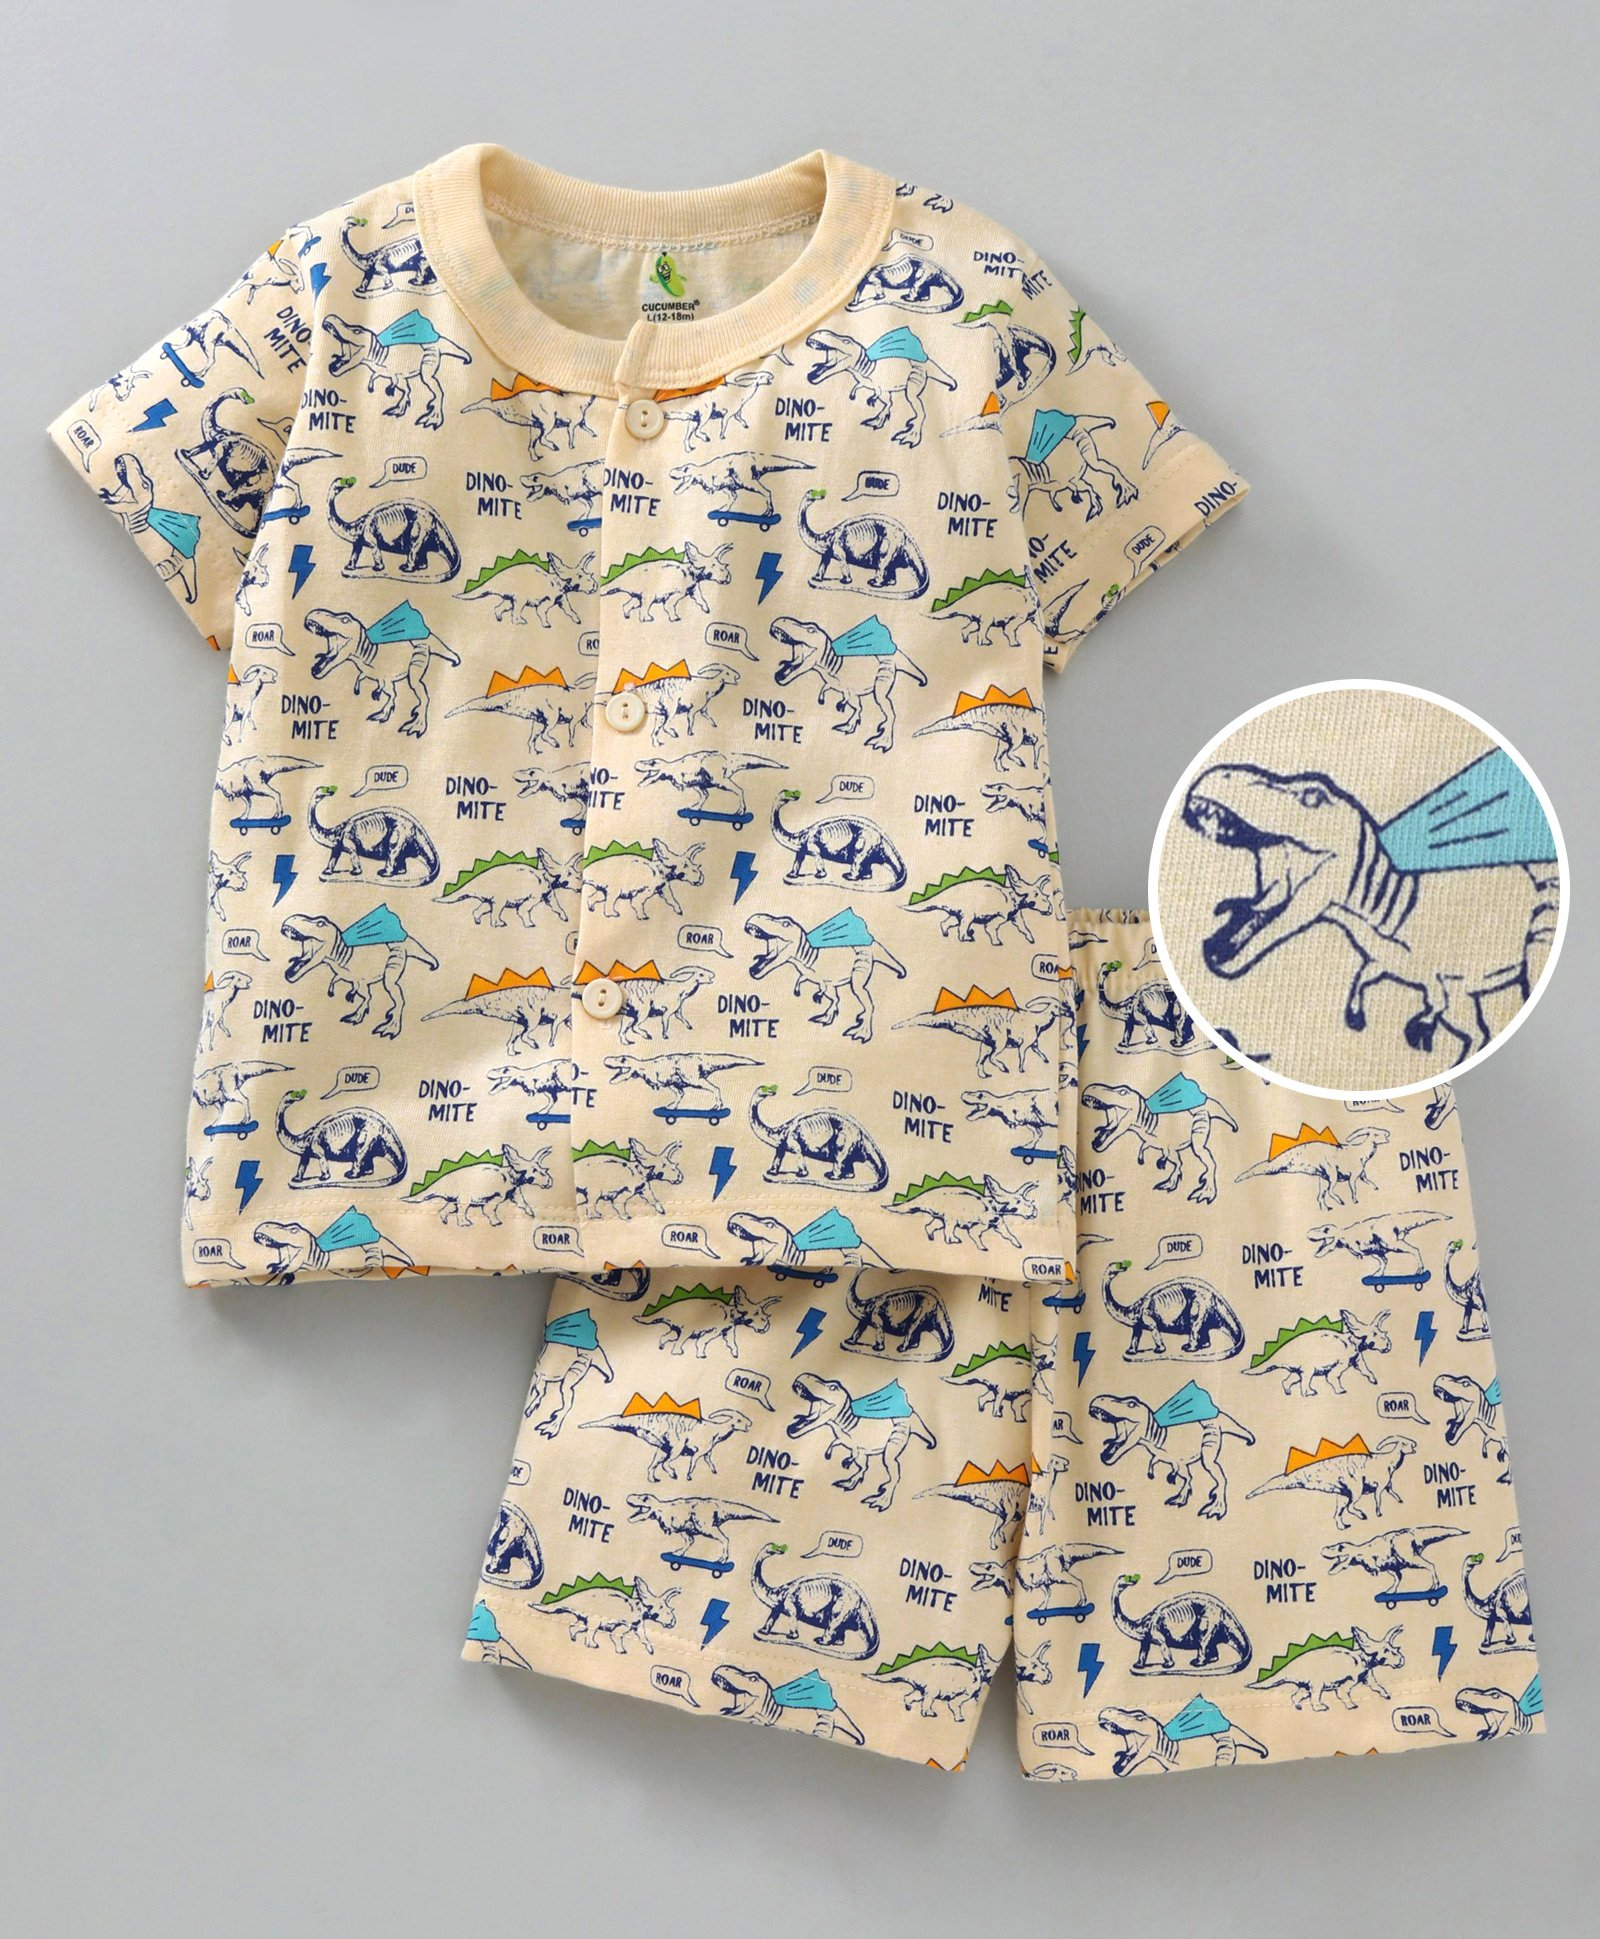 Buy Cucumber Half Sleeves Tee & Shorts All Over Dino Print Cream for Boys  (6-12 Months) Online in India, Shop at FirstCry com - 2588959